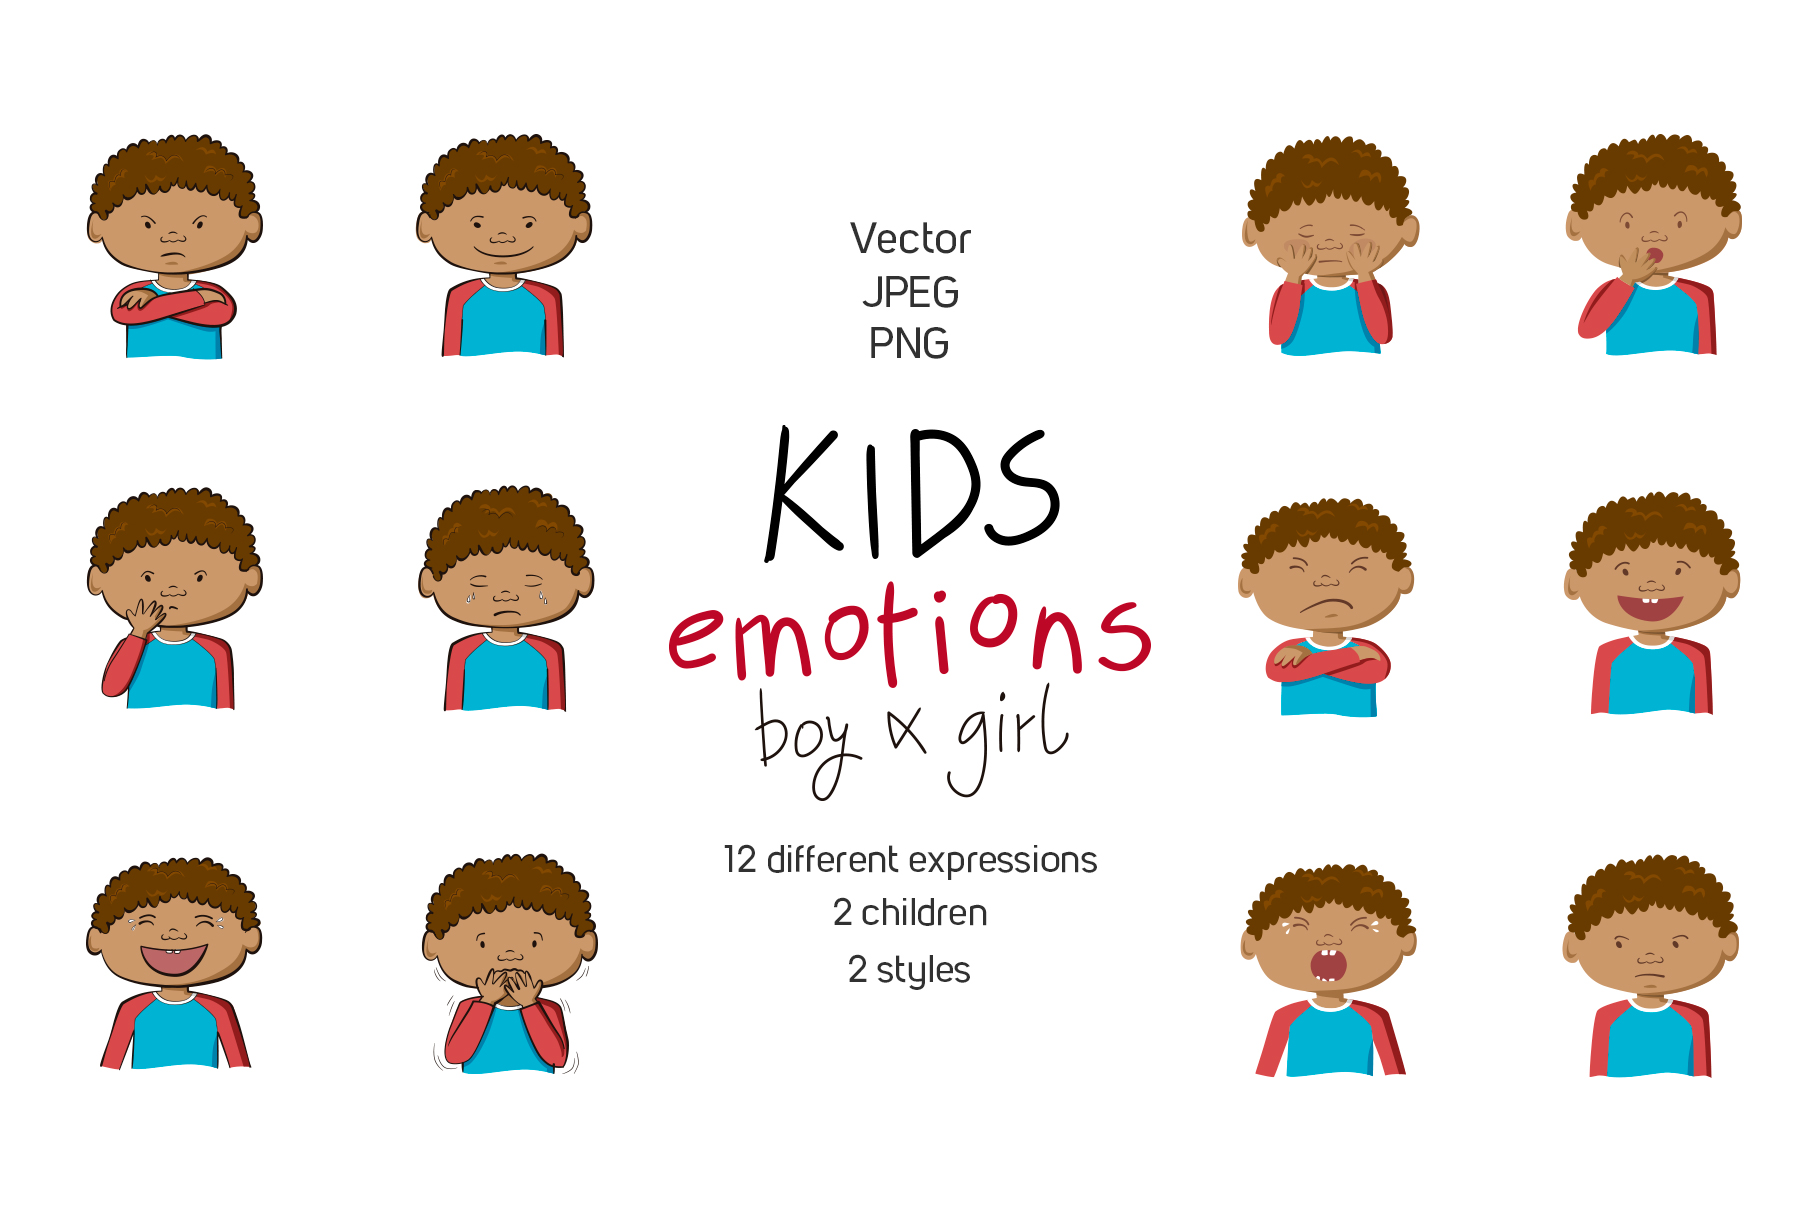 Kids emotions vector illustrations example image 3